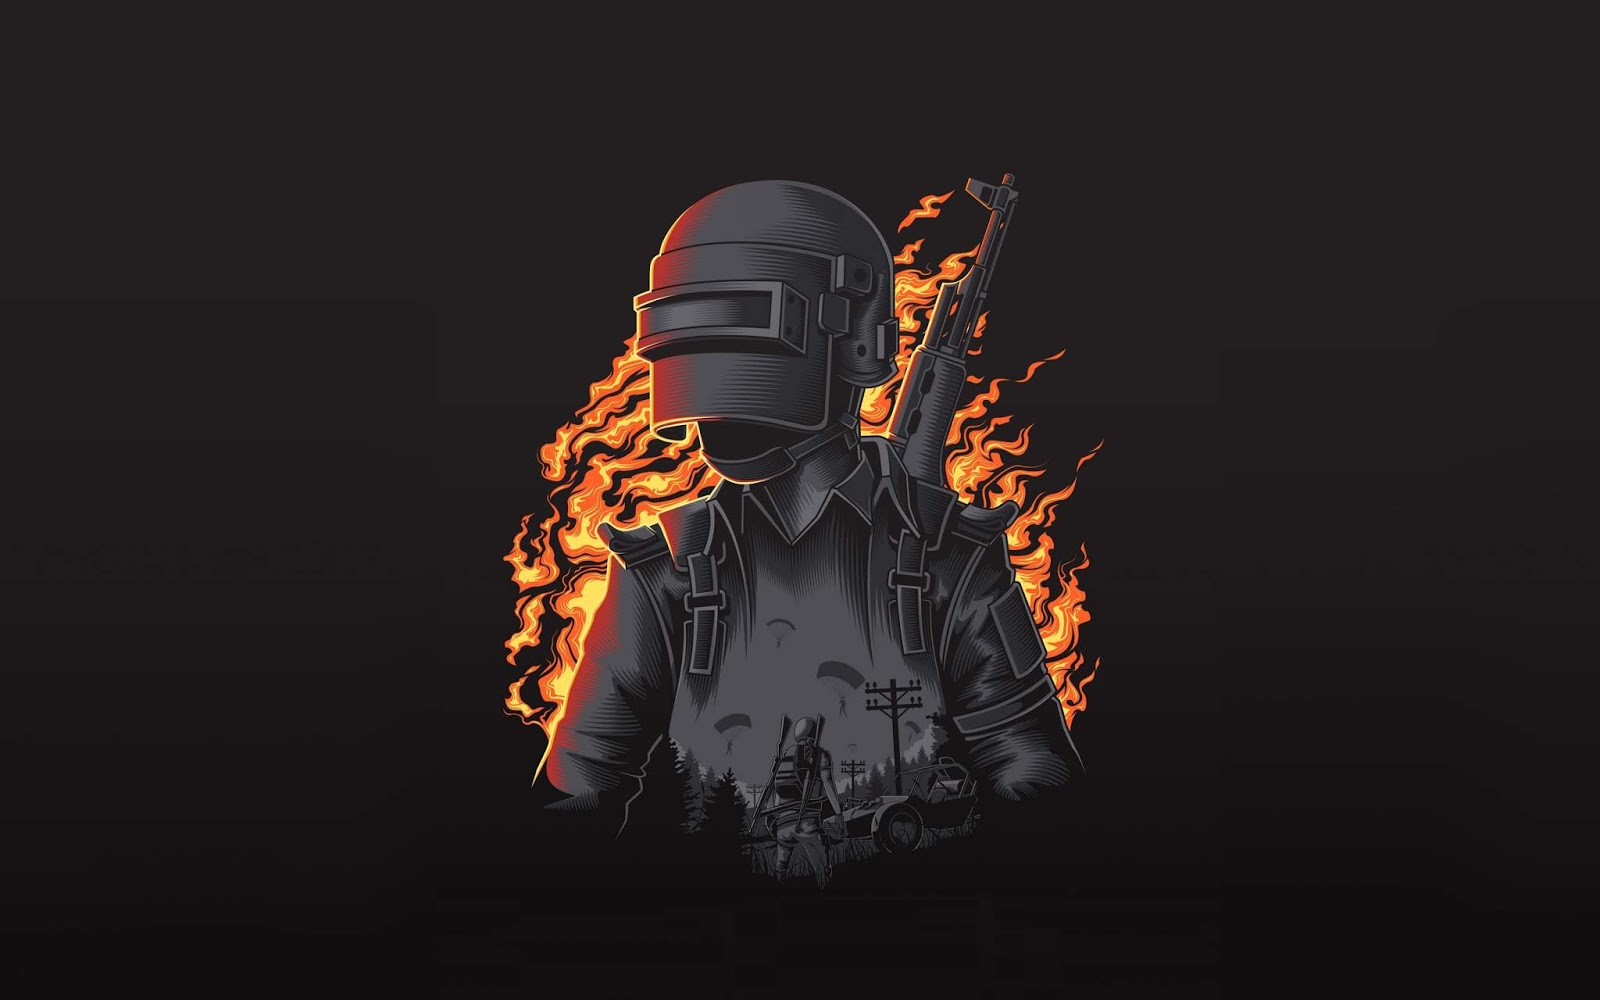 Pubg Wallpapers Hd 4k